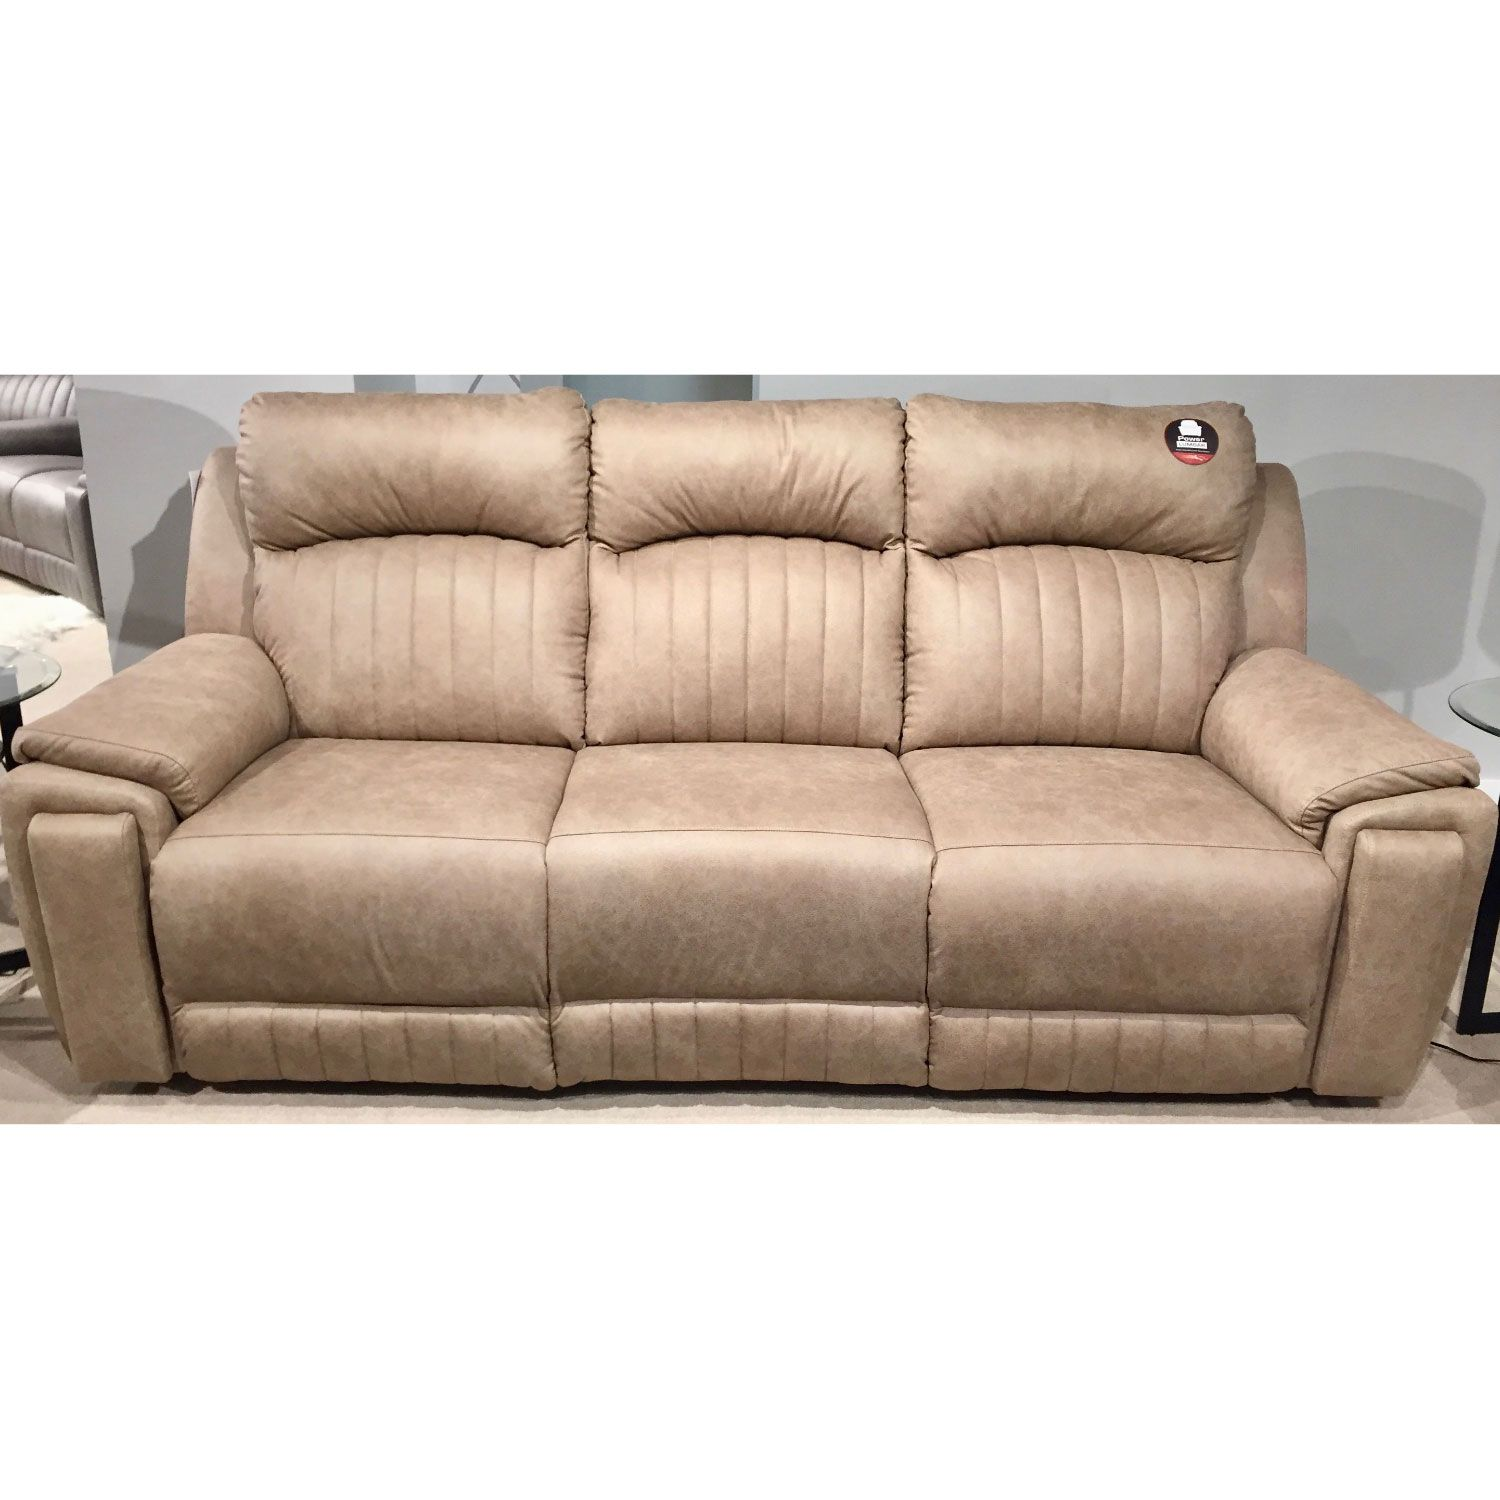 Southern Motion Silver Screen Double Reclining Sofa Beige Fabric